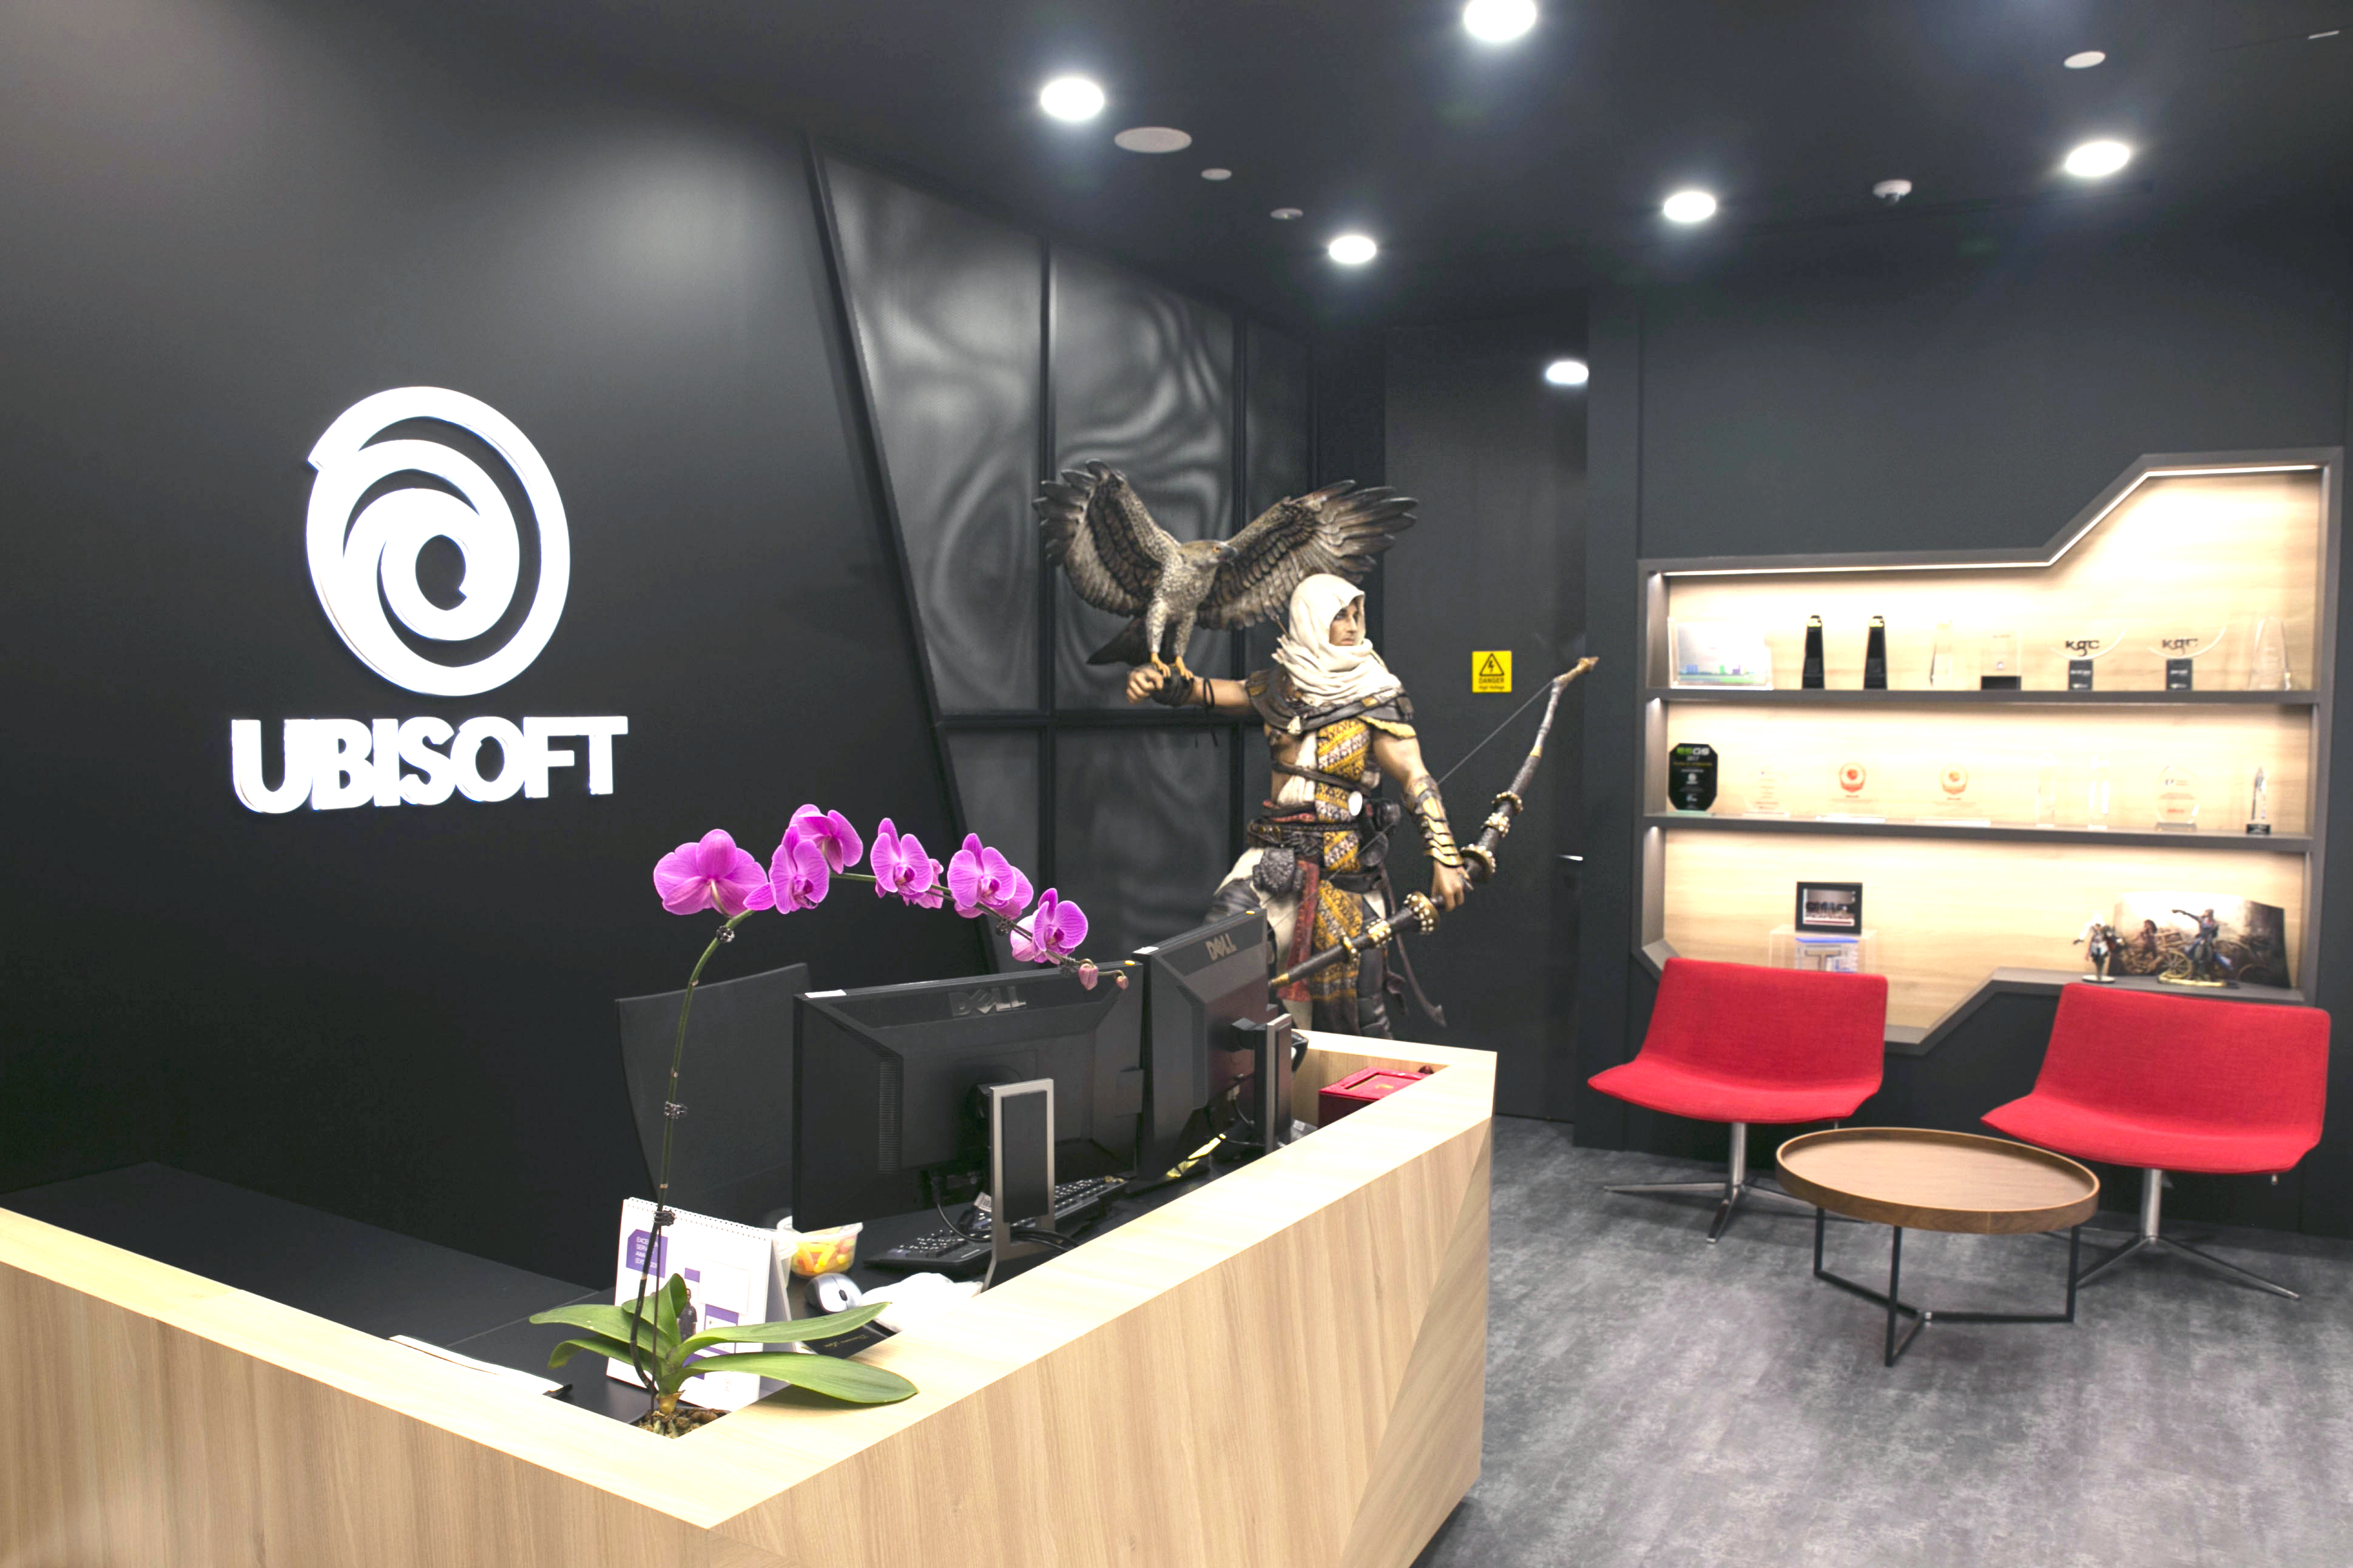 Ubisoft S Startup Program To Launch 4th Season Expand To Sg